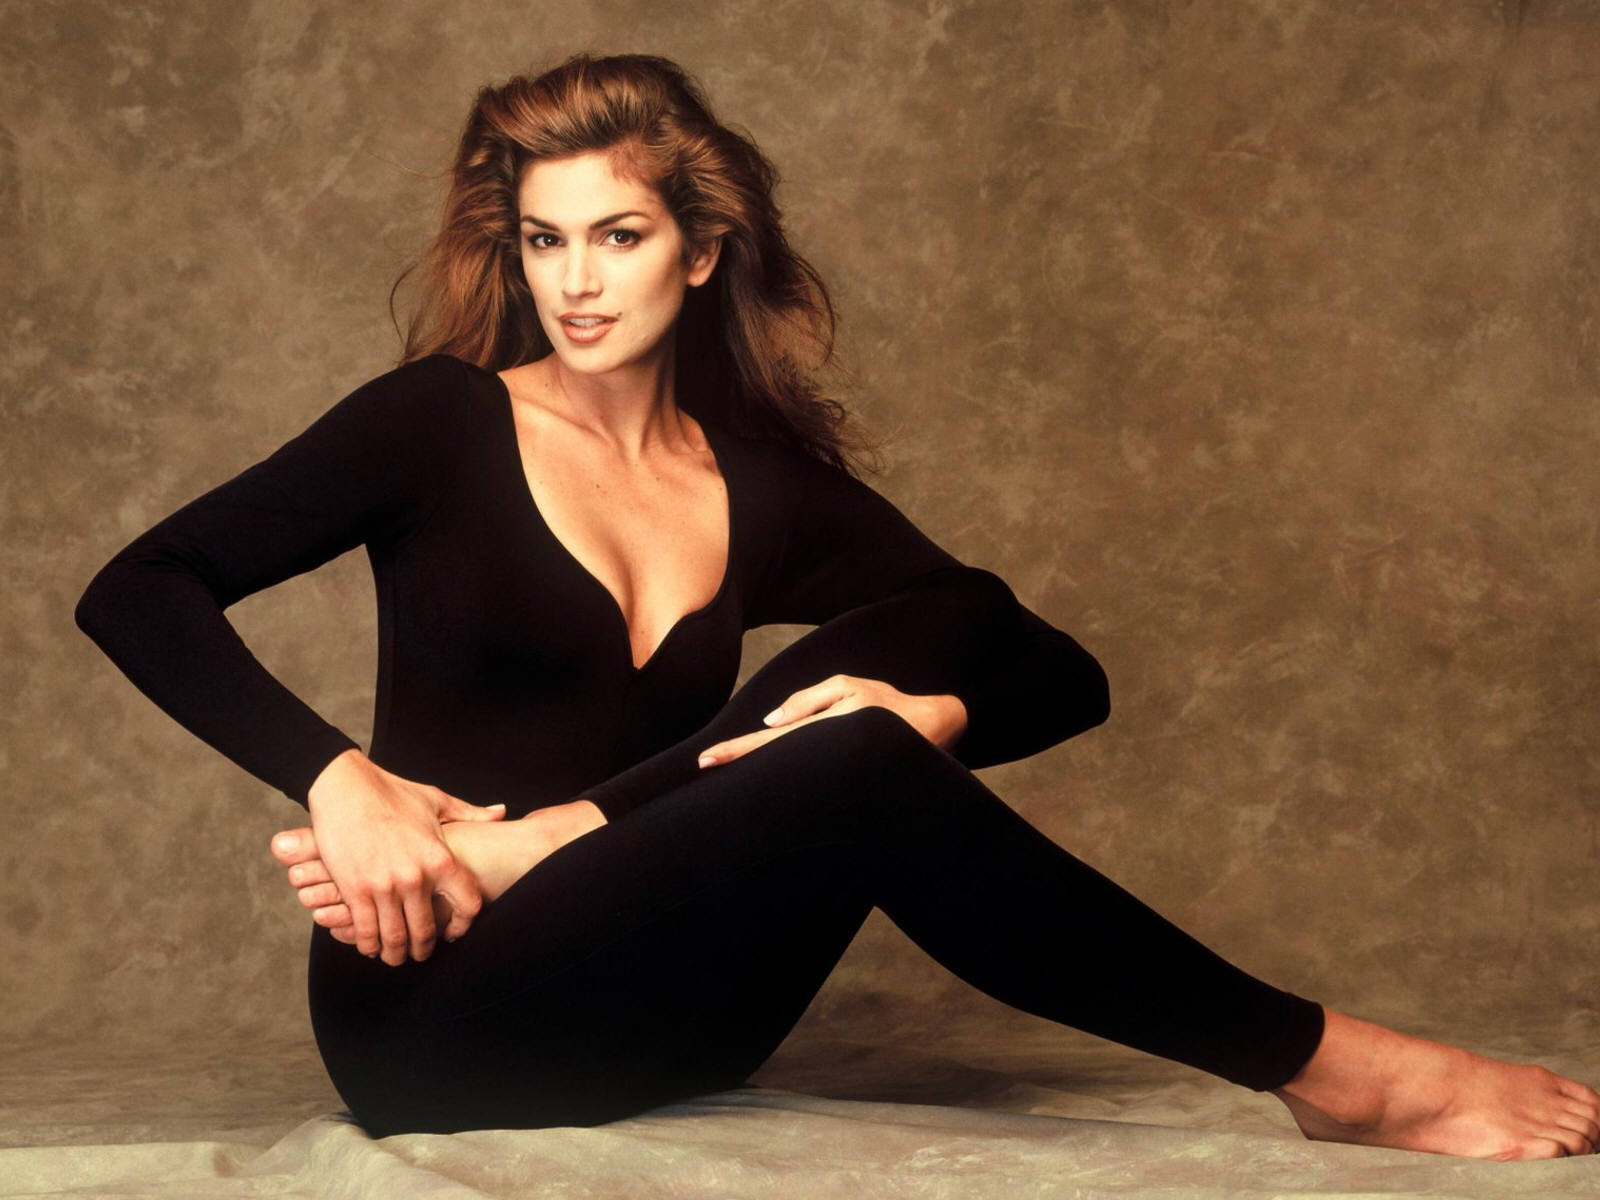 Cindy Crawford Hot Wallpapers Free Download Bikinisexyphotoshoot Girls Wallpapers Movie Dvd -8914